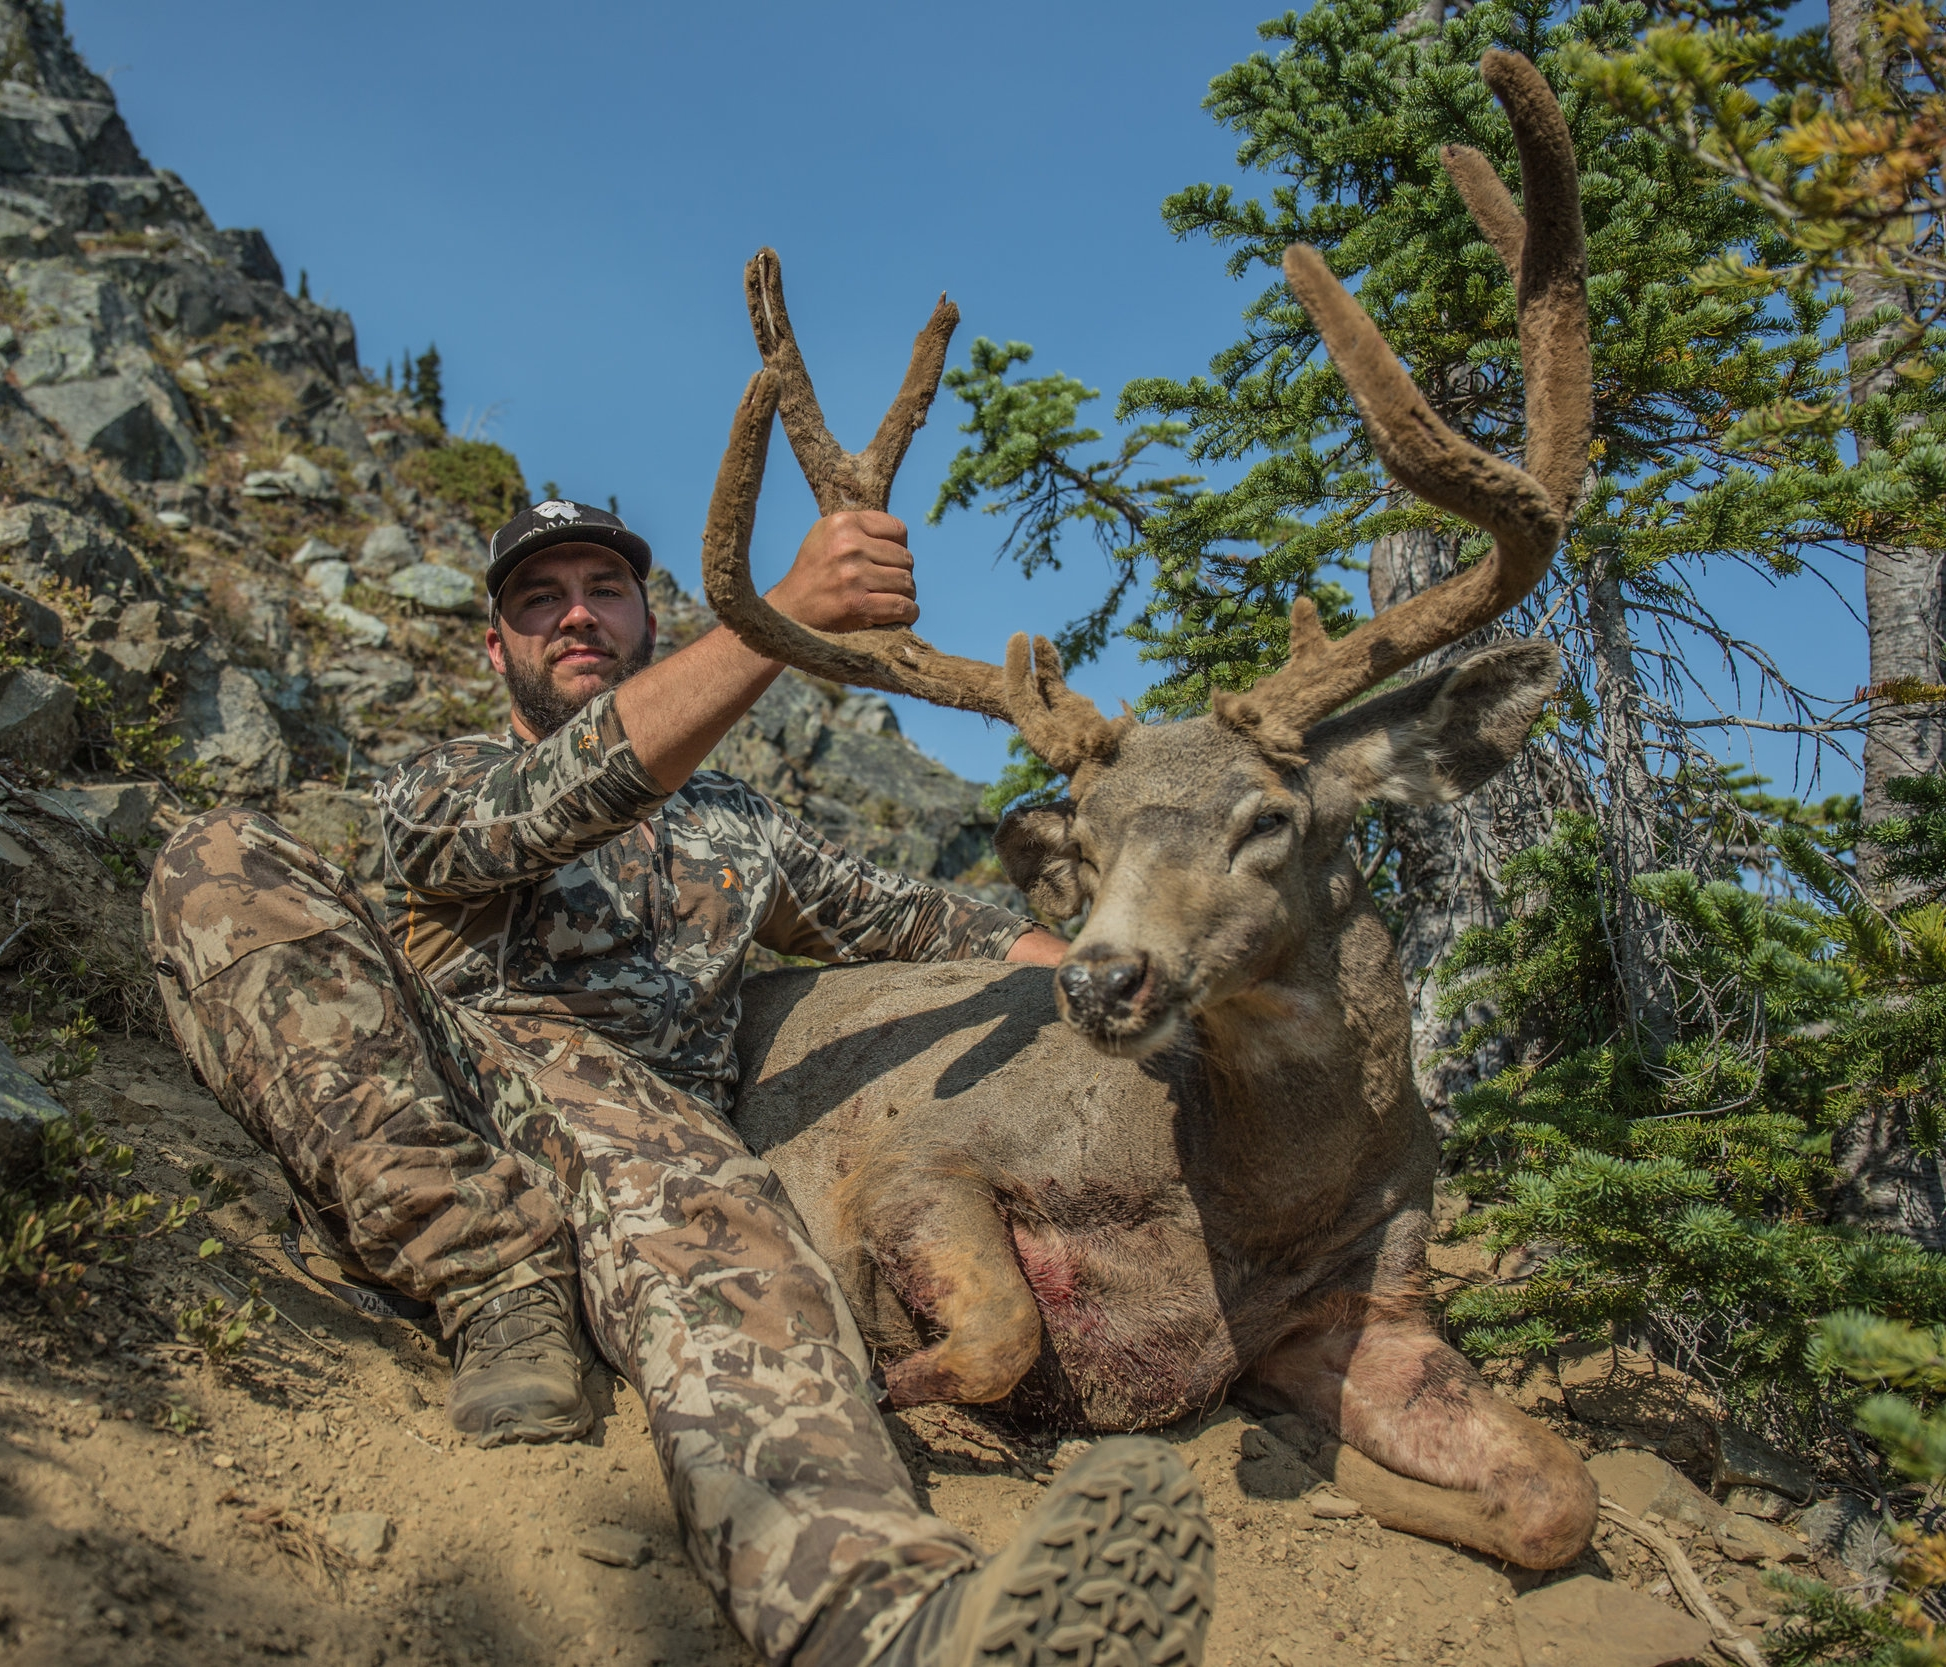 JEFF ROBERTS   Jeff is PNWild's founding member. He is 28 years old, and a lifetime resident of western Washington. Backcountry hunting is one of Jeff's great passions, along with wildlife photography and filming. When it's not a bow or a rifle in his hand, it's surely a camera.